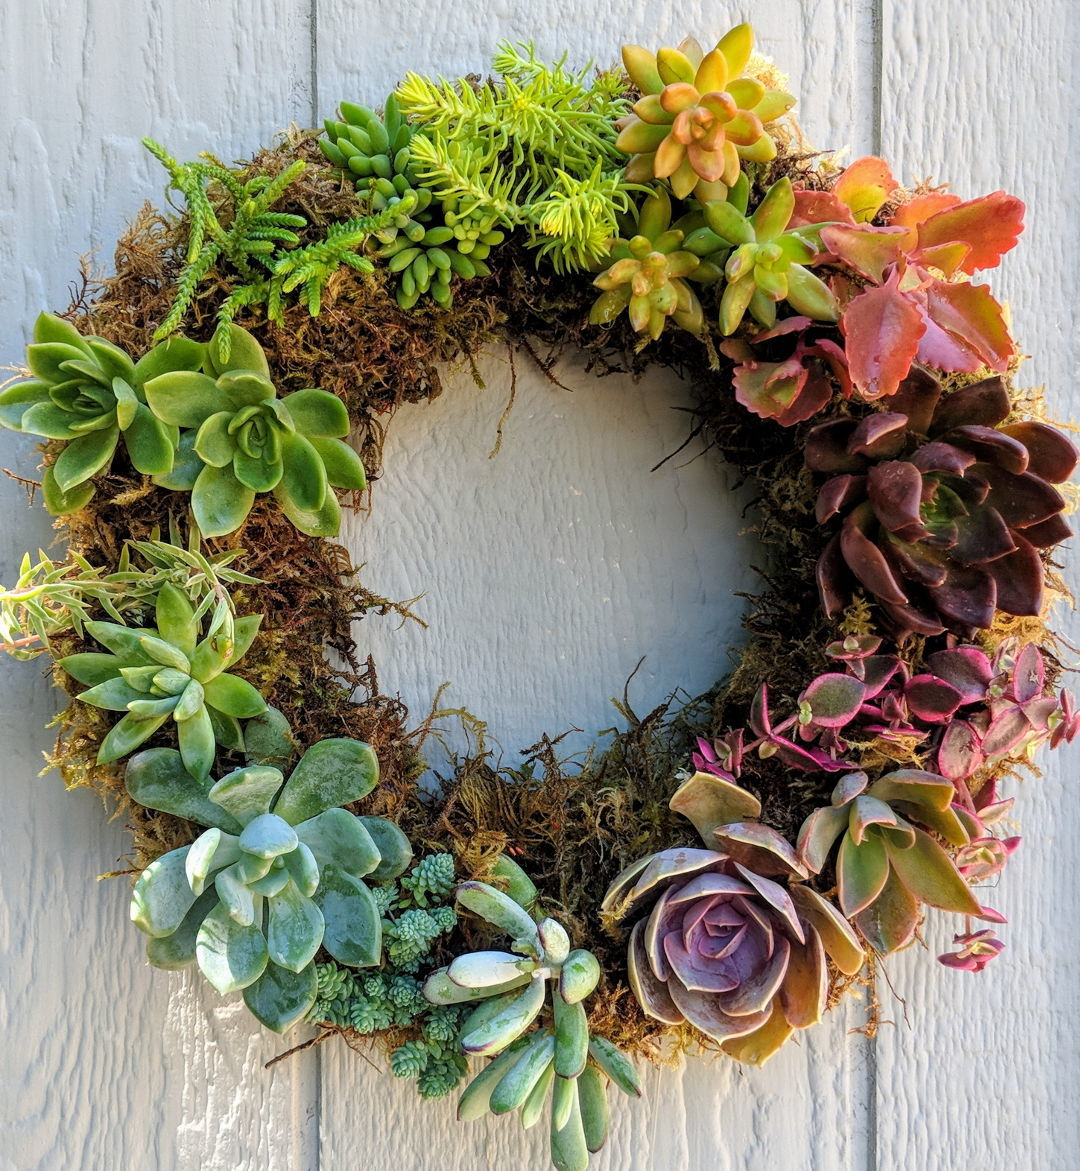 Making Succulent Wreaths Finegardening